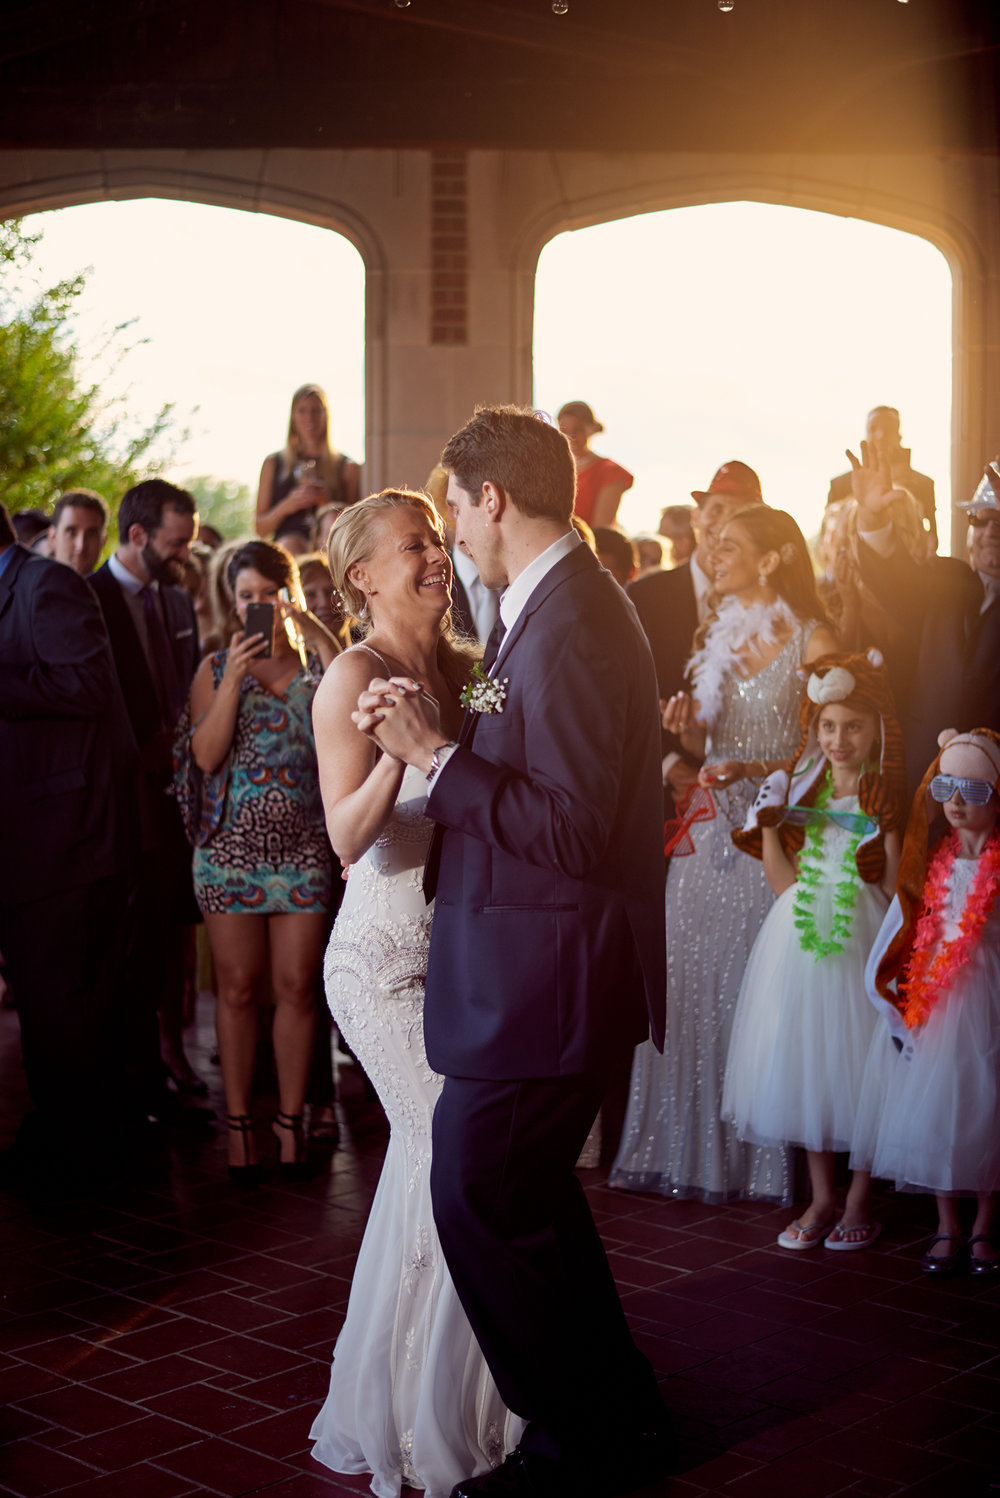 Kaitlyn and Ryan's wedding at Waveny House in New Canaan, CT